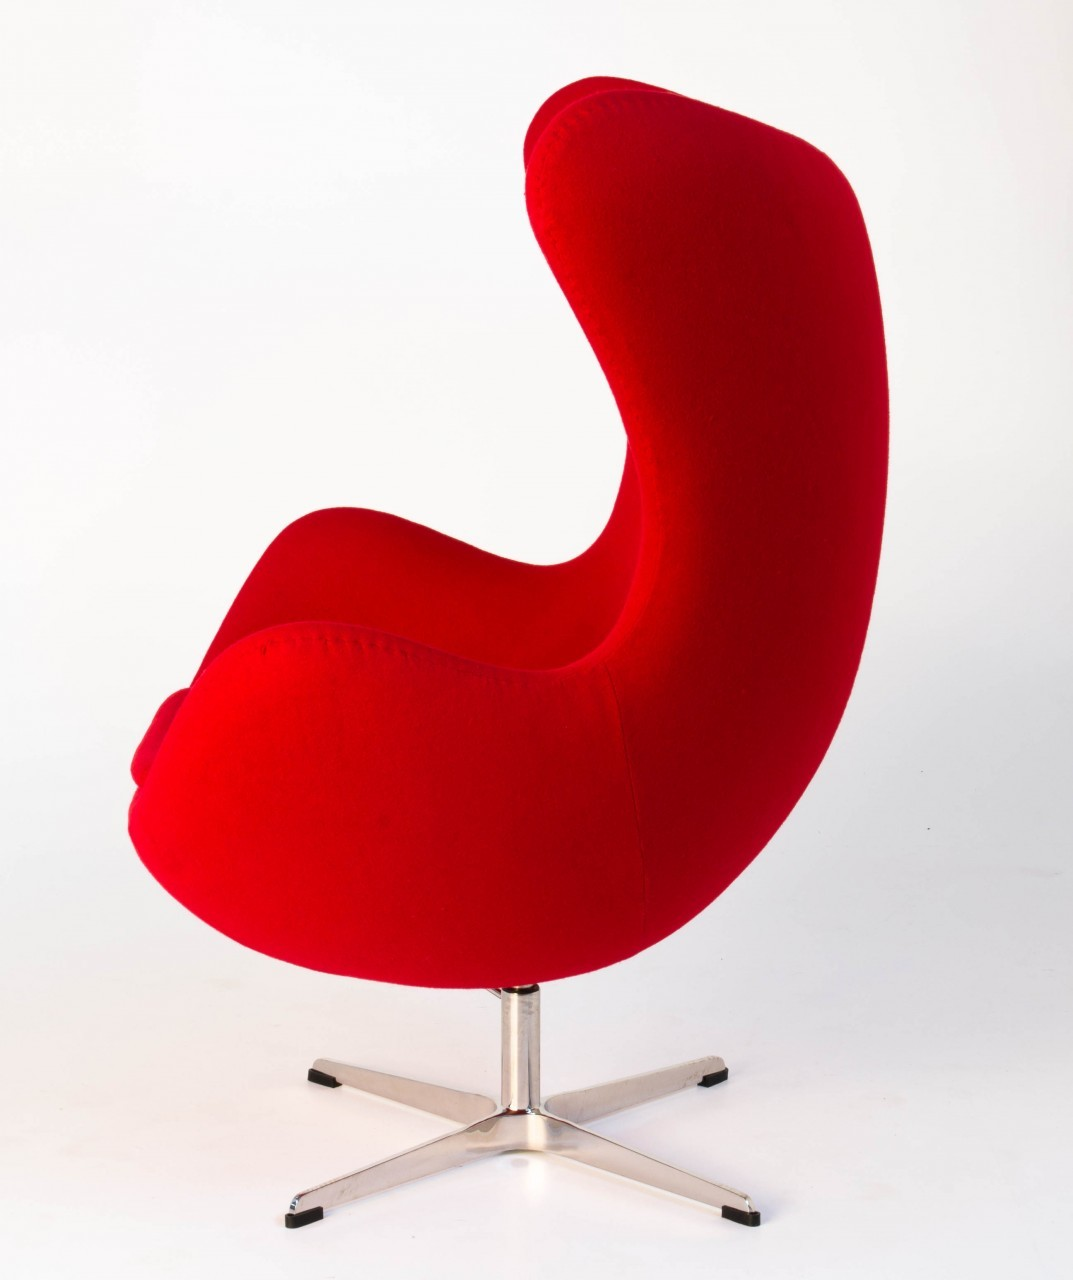 Replica Arne Jacobsen Egg Chair Red